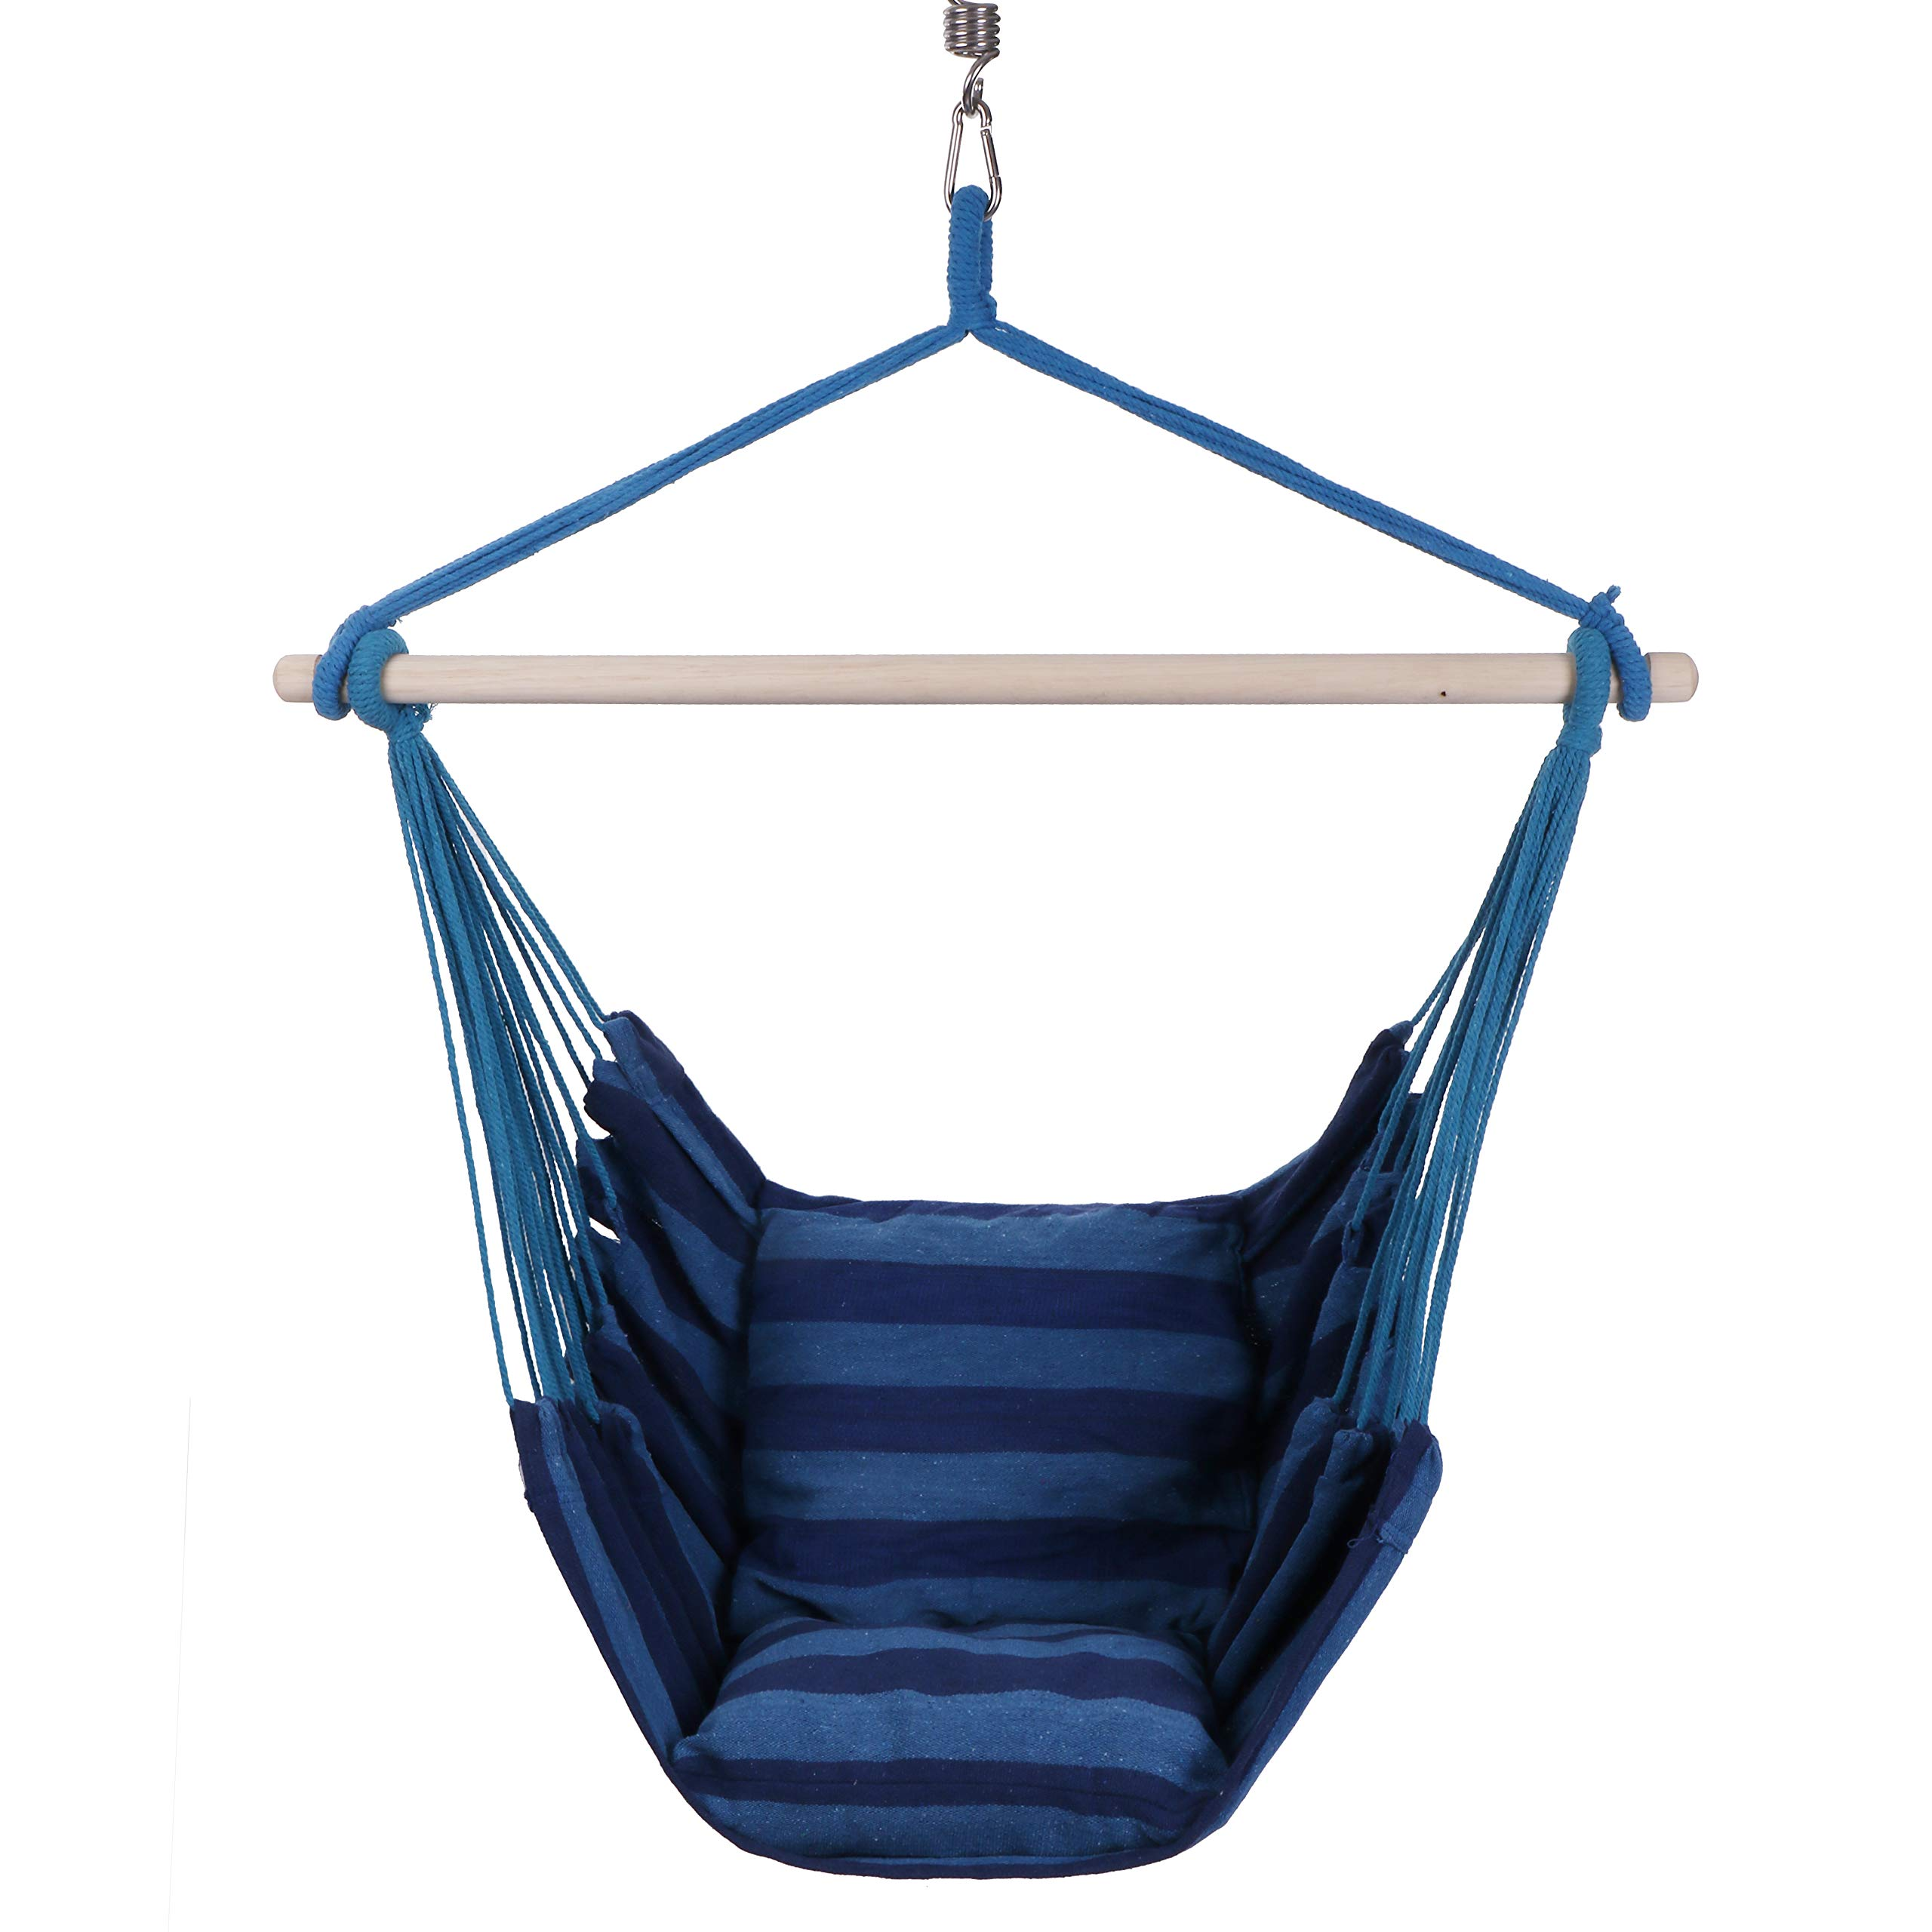 KLM Hanging Rope Hammock Chair Swing | Perfect Hanging Chair for Bedroom, Porch Swing Hammock Chair, Indoor Hammock | Hammock Swing Chair Indoor-Outdoor One Person Swing with Pillows and Hanging Kit